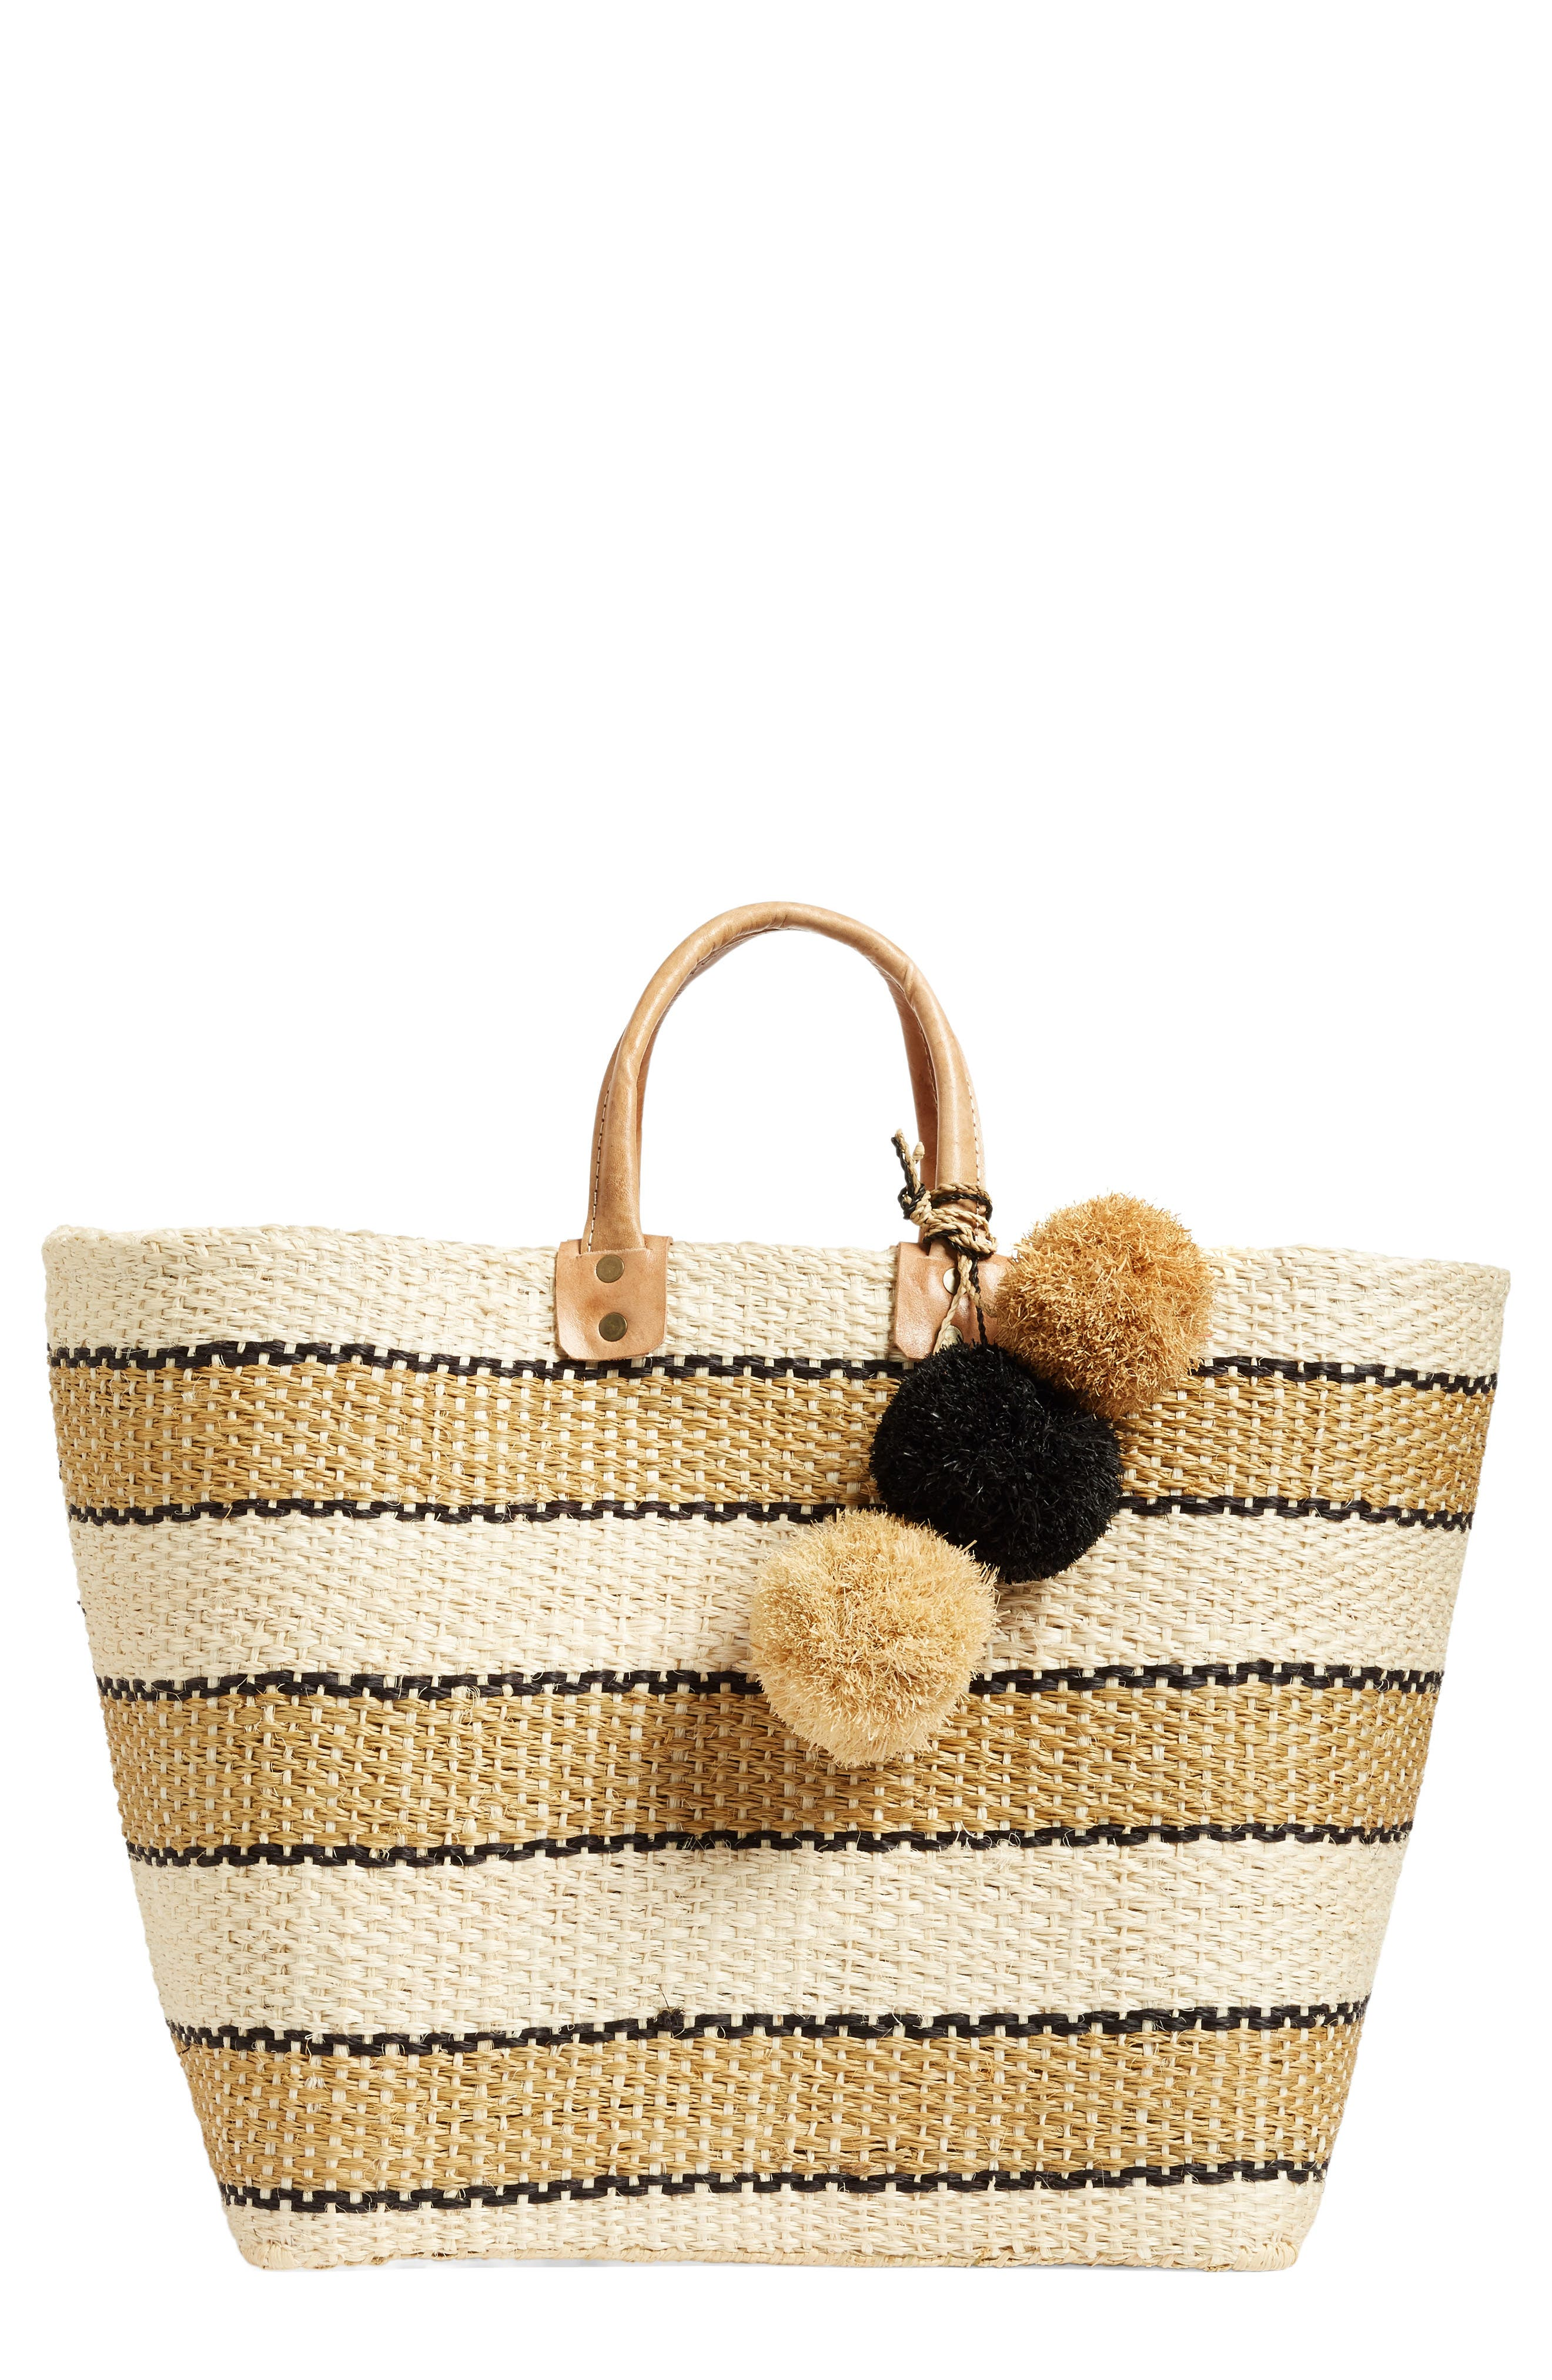 'Capri' Woven Tote with Pom Charms,                             Main thumbnail 1, color,                             200